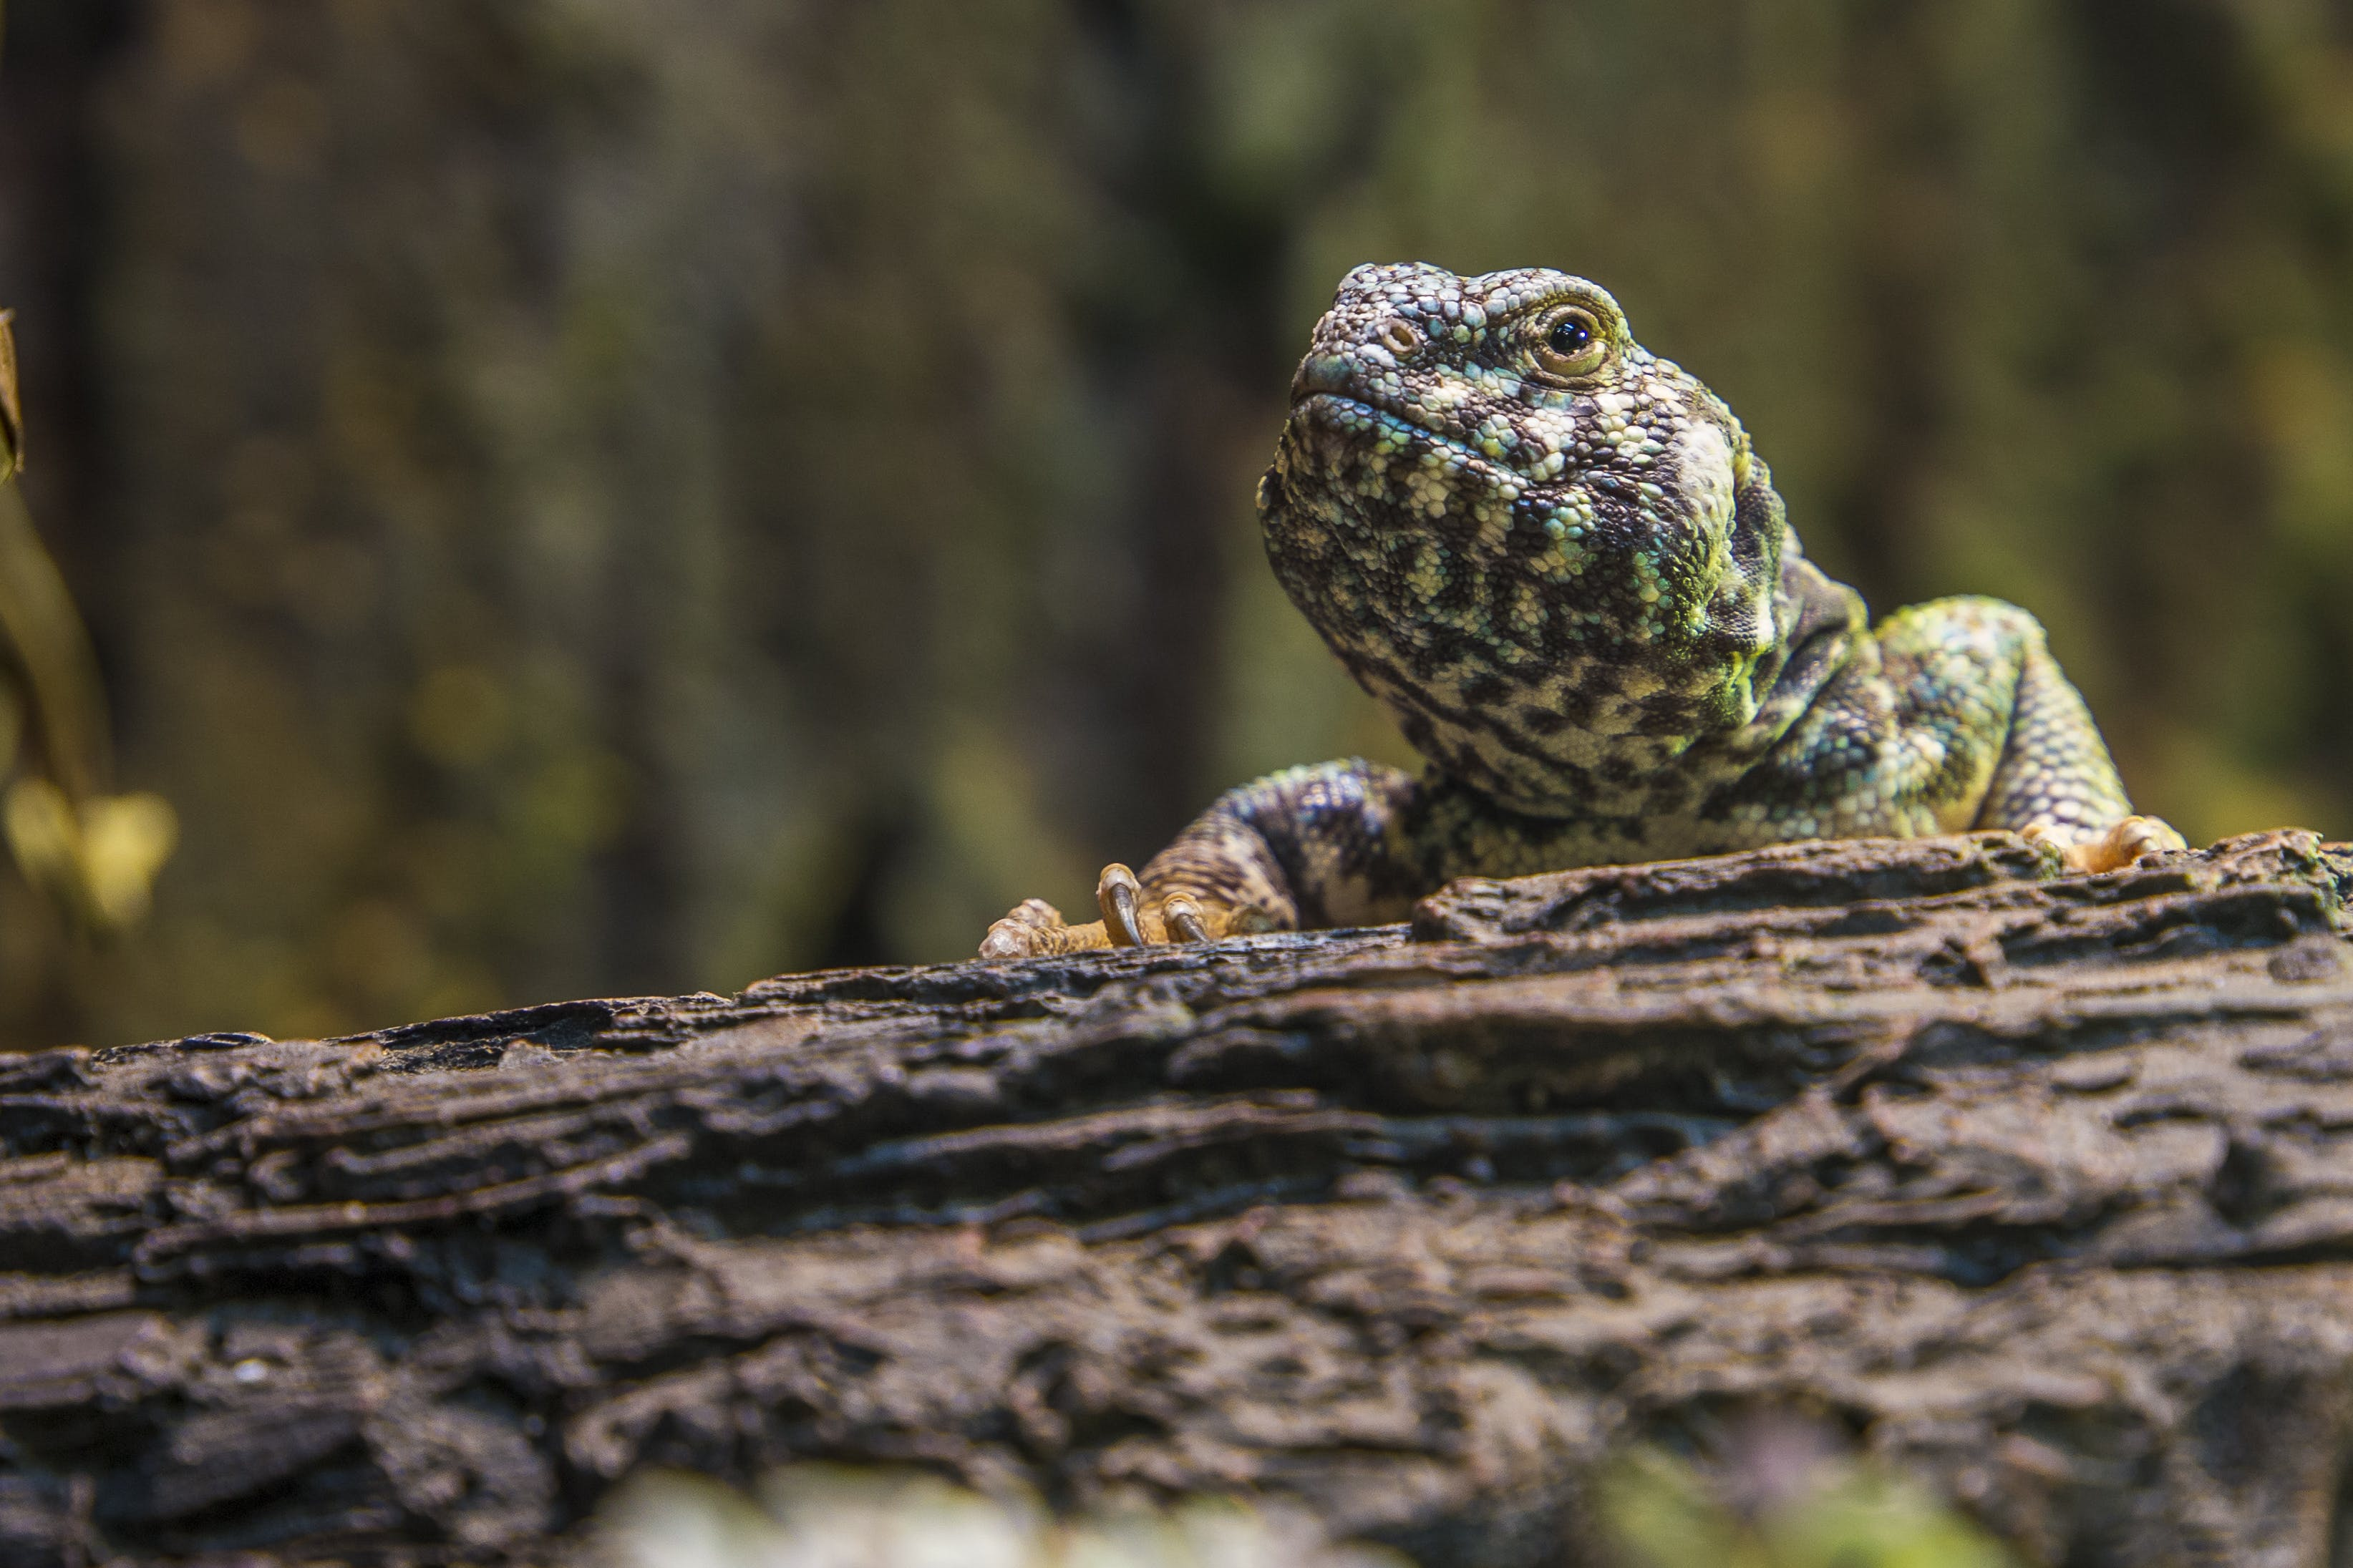 Green and Black Lizard on Top of Rock Close-up Photography